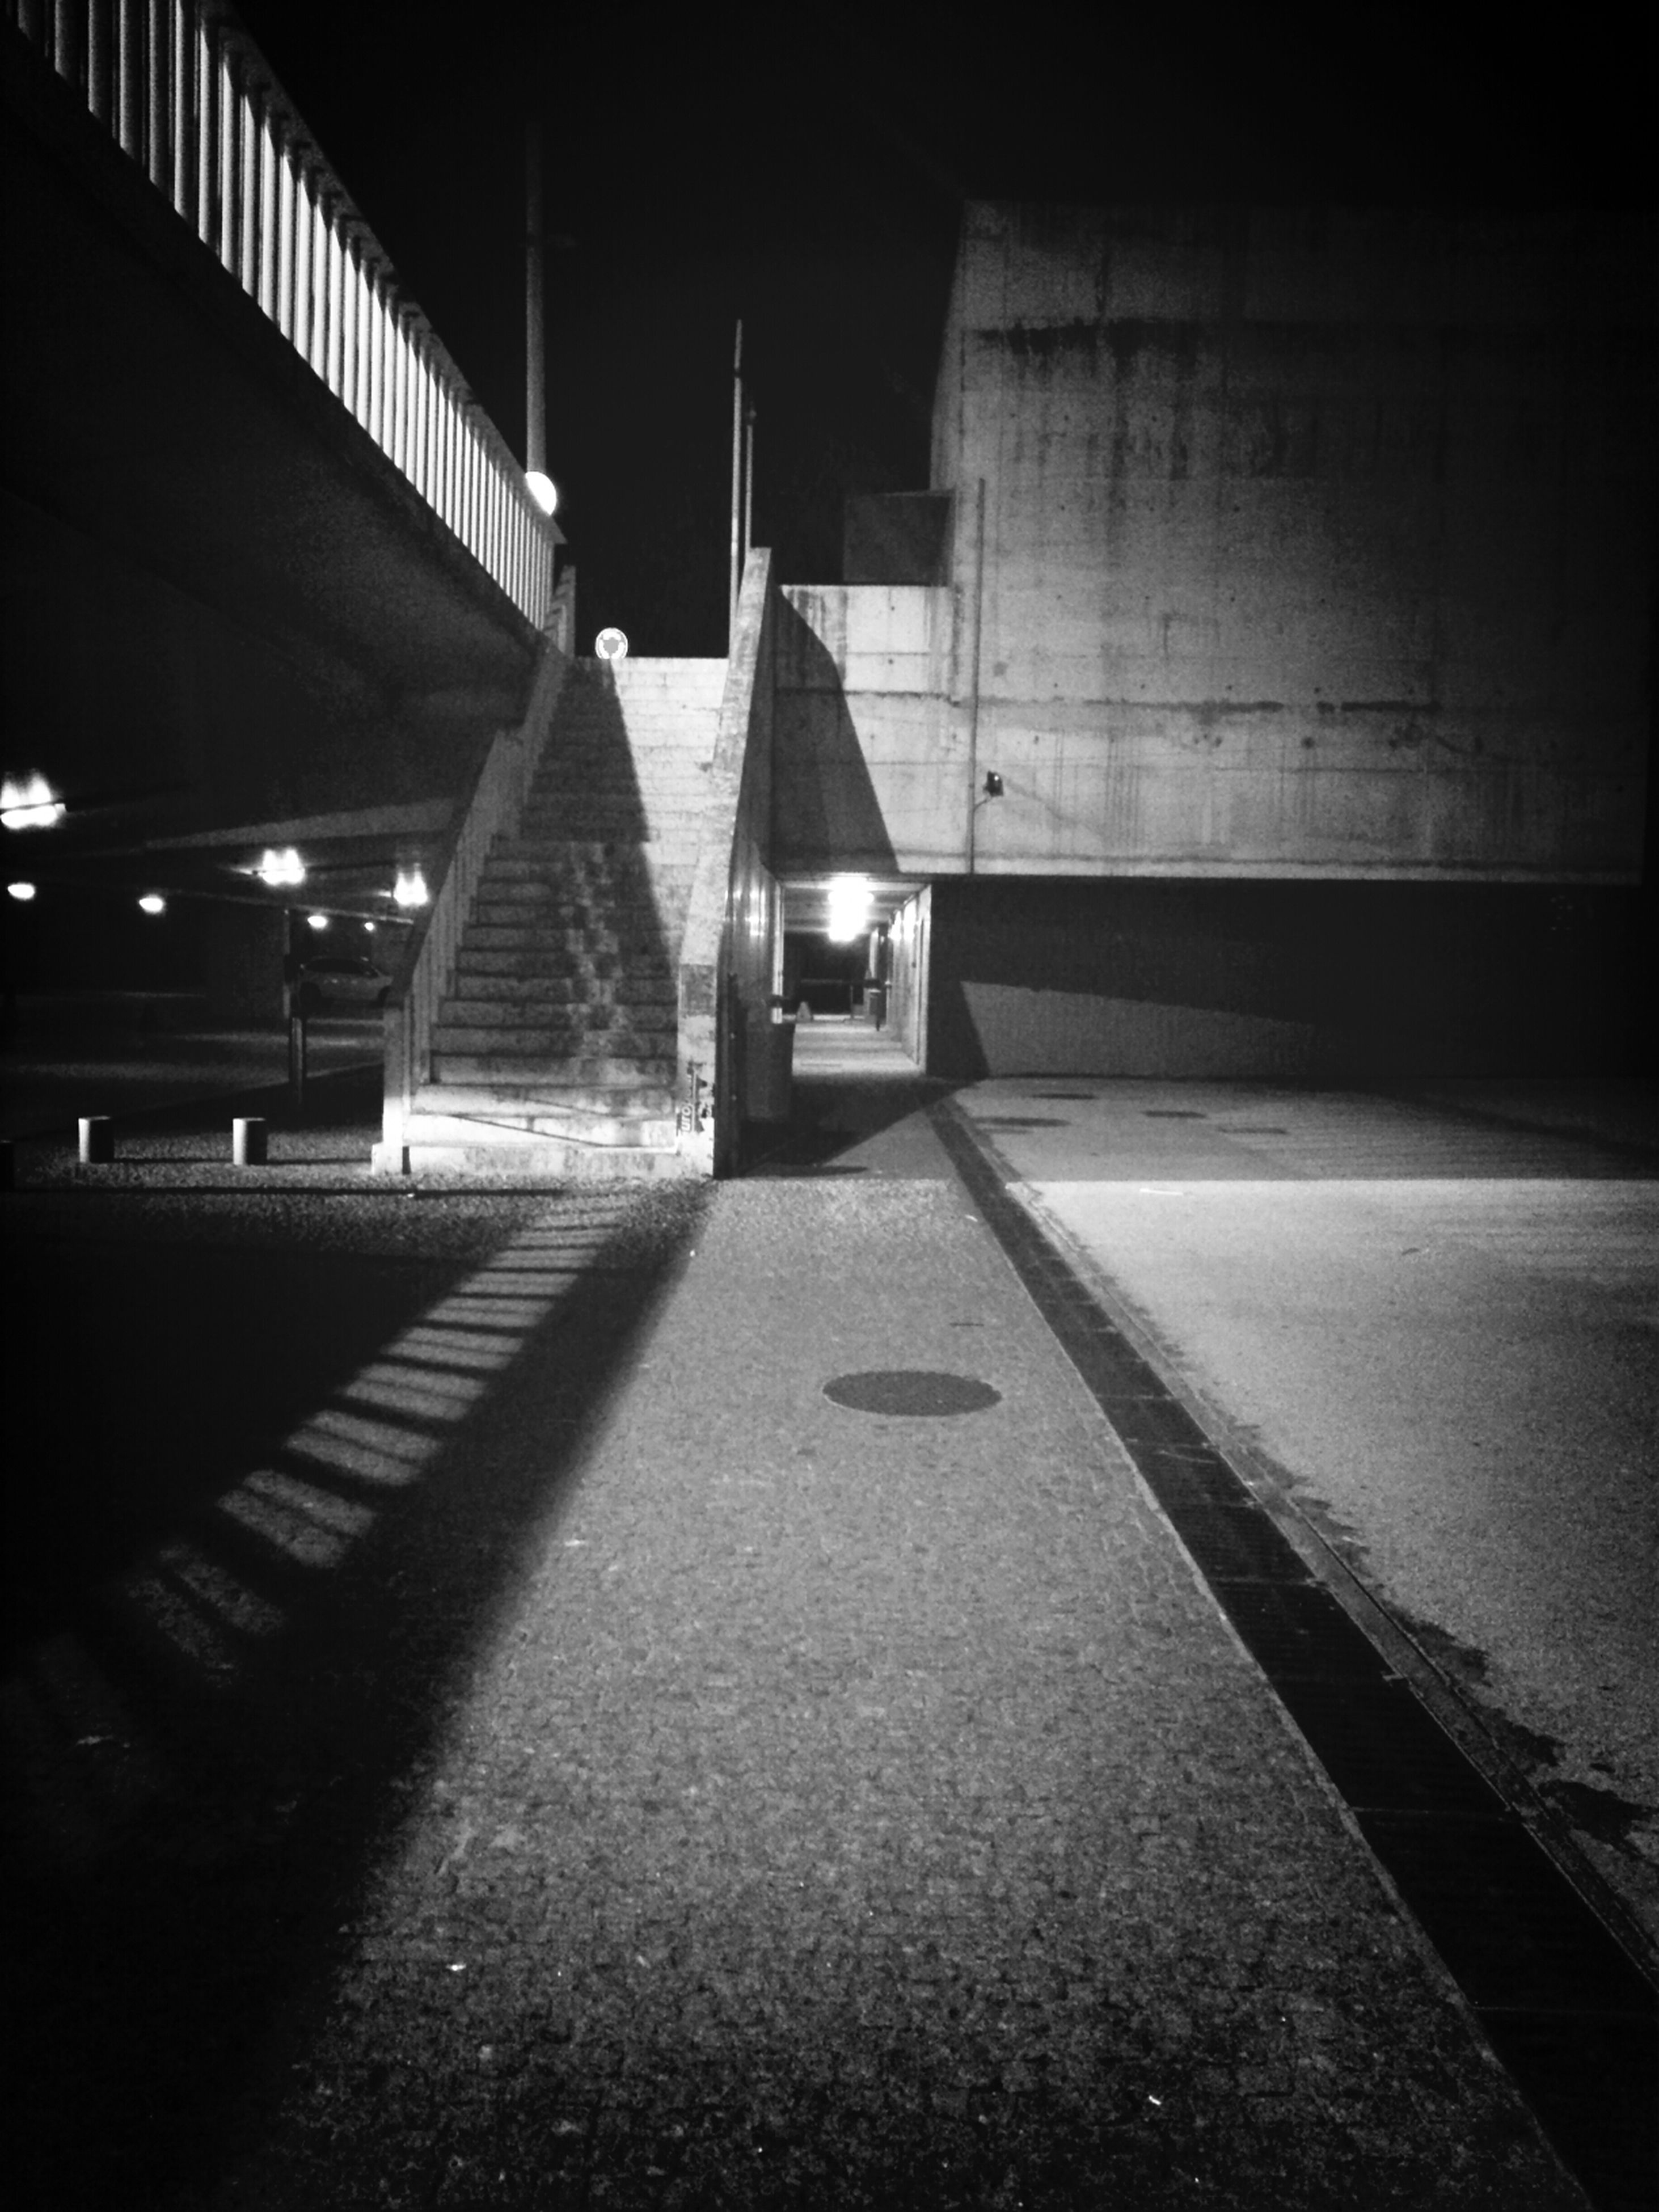 transportation, night, illuminated, the way forward, road, street, built structure, mode of transport, architecture, lighting equipment, road marking, empty, land vehicle, diminishing perspective, car, vanishing point, street light, no people, outdoors, railing